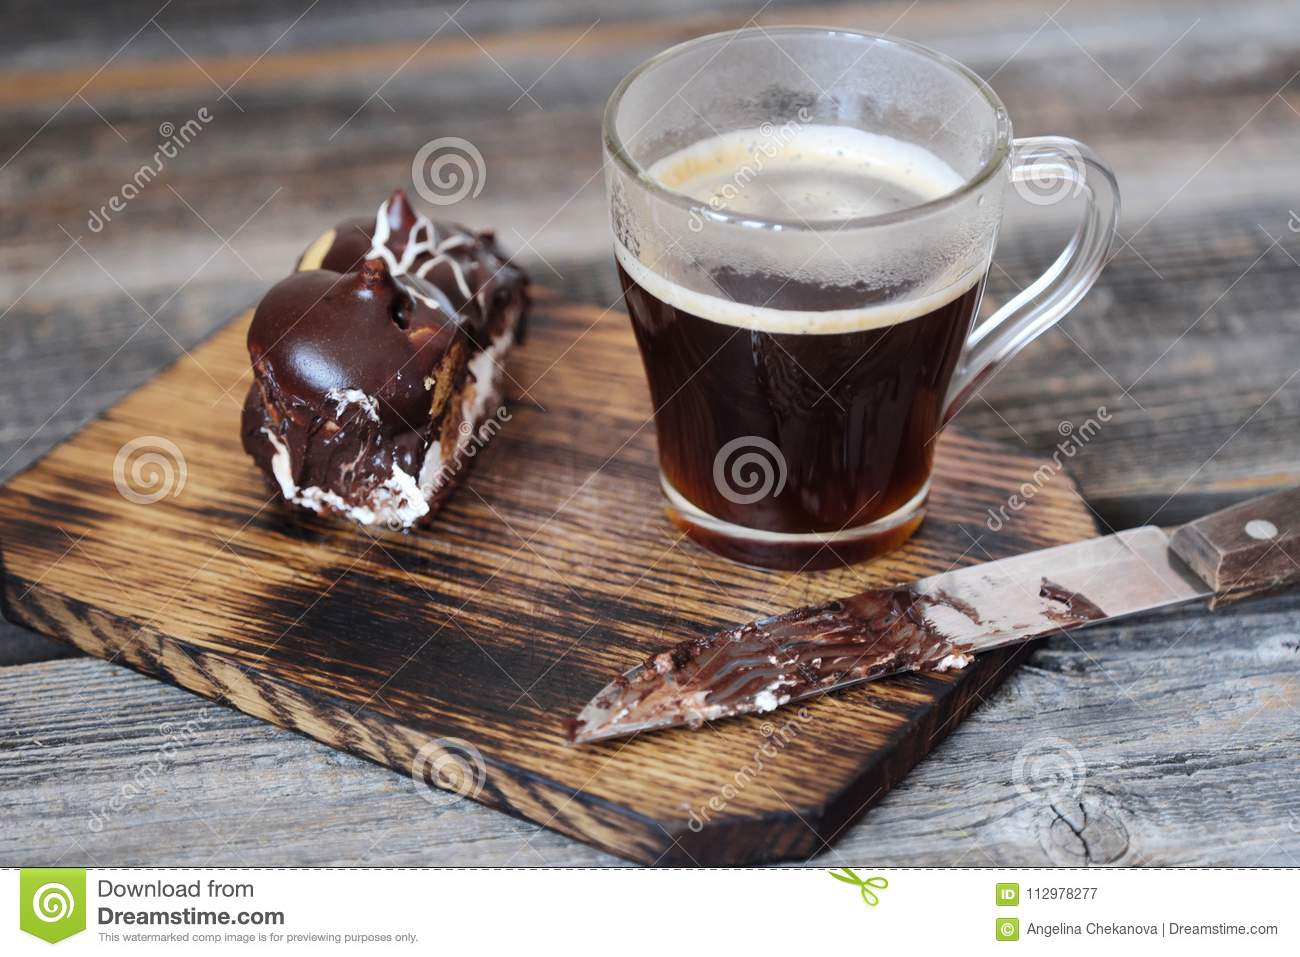 Delicious chocolate dessert with profiteroles and coffee